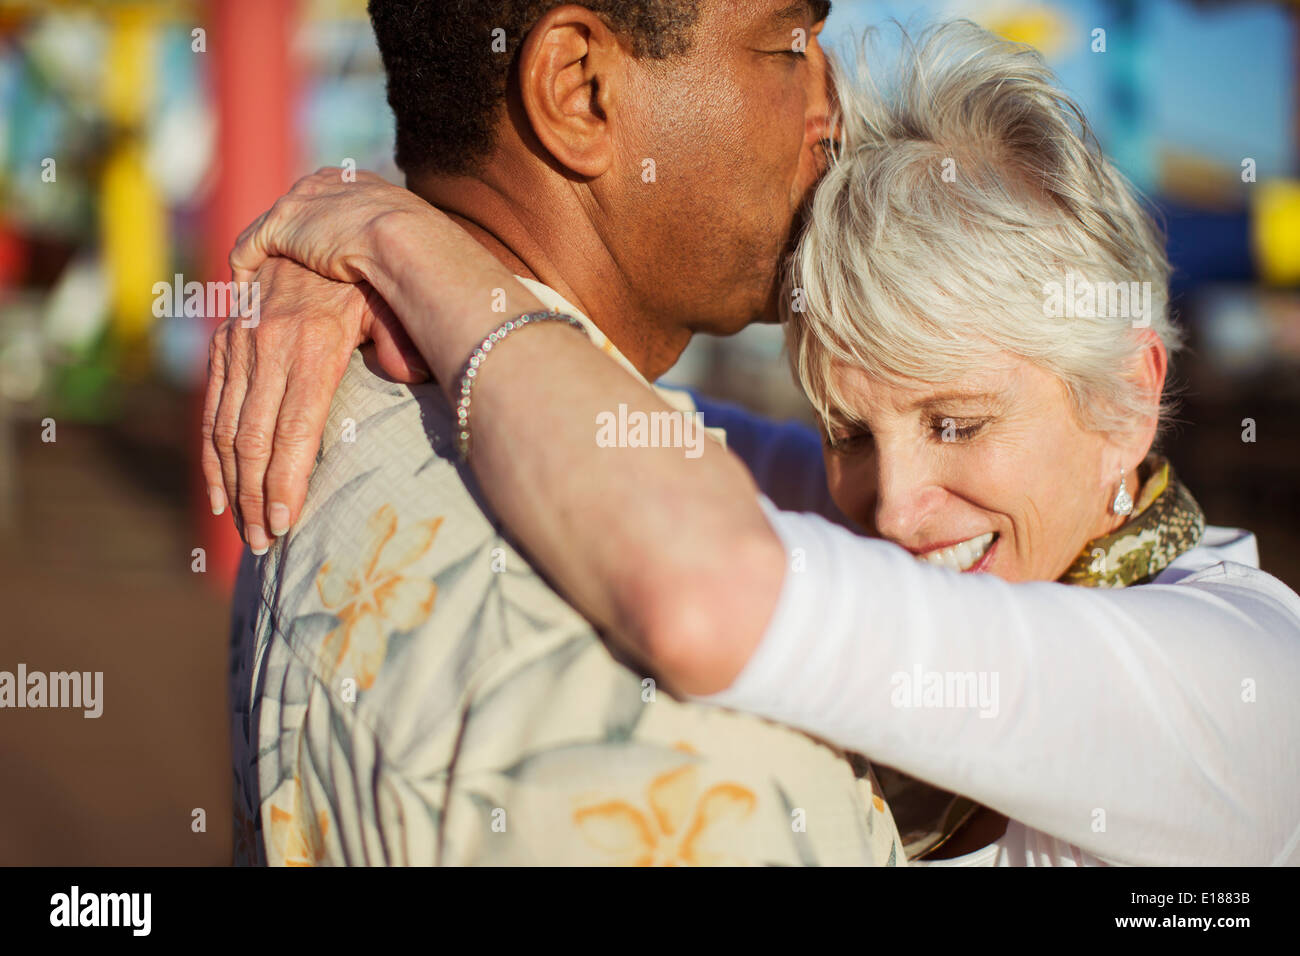 Senior couple kissing outdoors - Stock Image